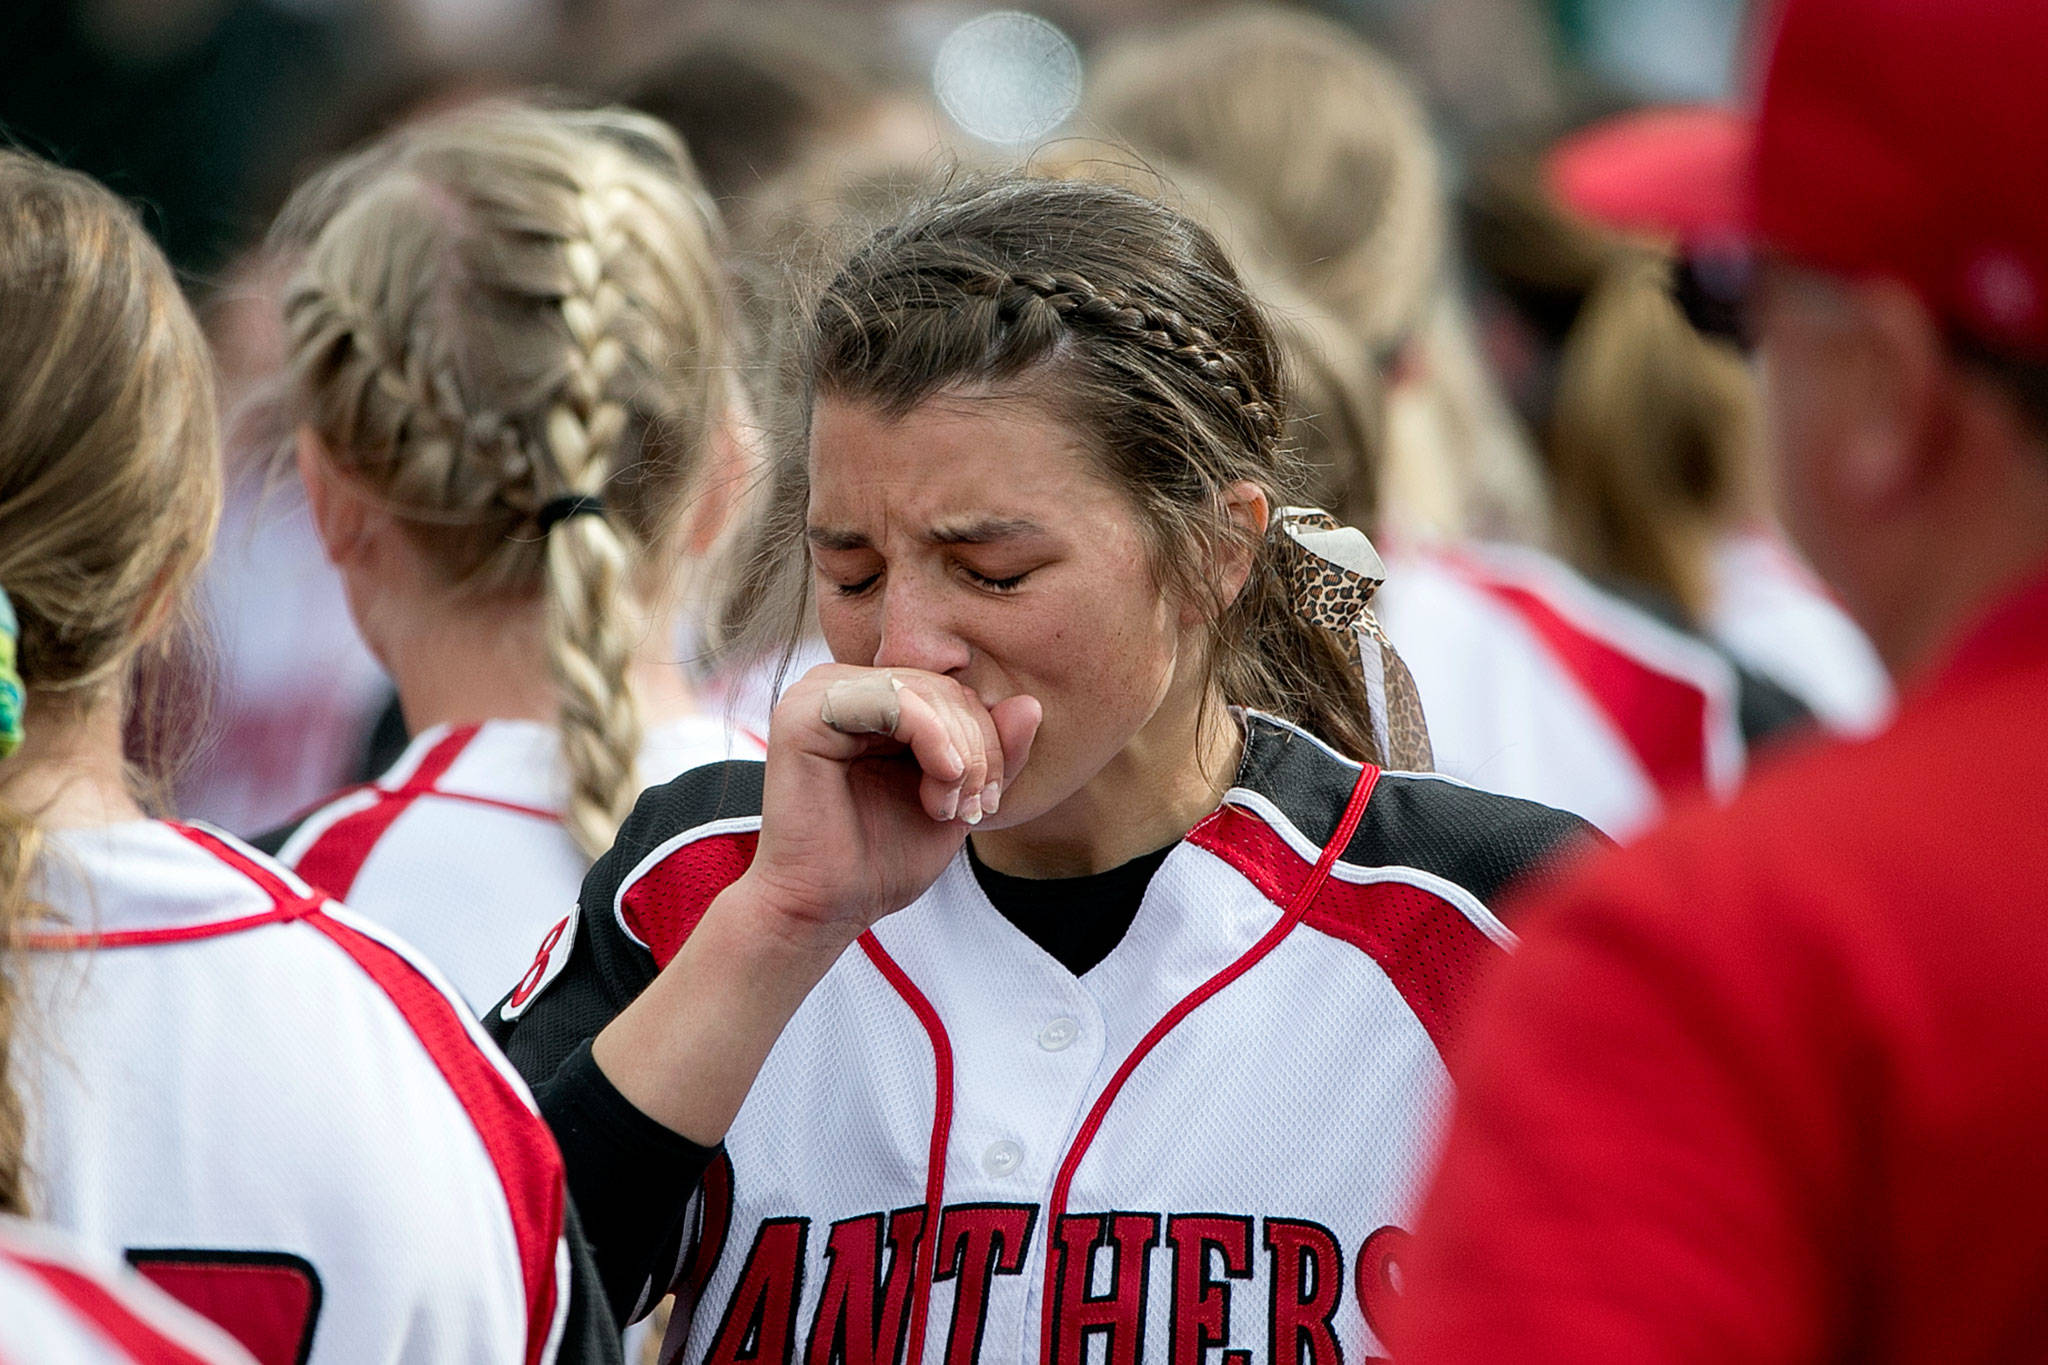 Snohomish's Bailey Greenlee reacts Saturday after the Panthers lost to Bonney Lake in the 3A softball championship game at the Regional Athletic Complex in Lacey. (Kevin Clark / The Herald)